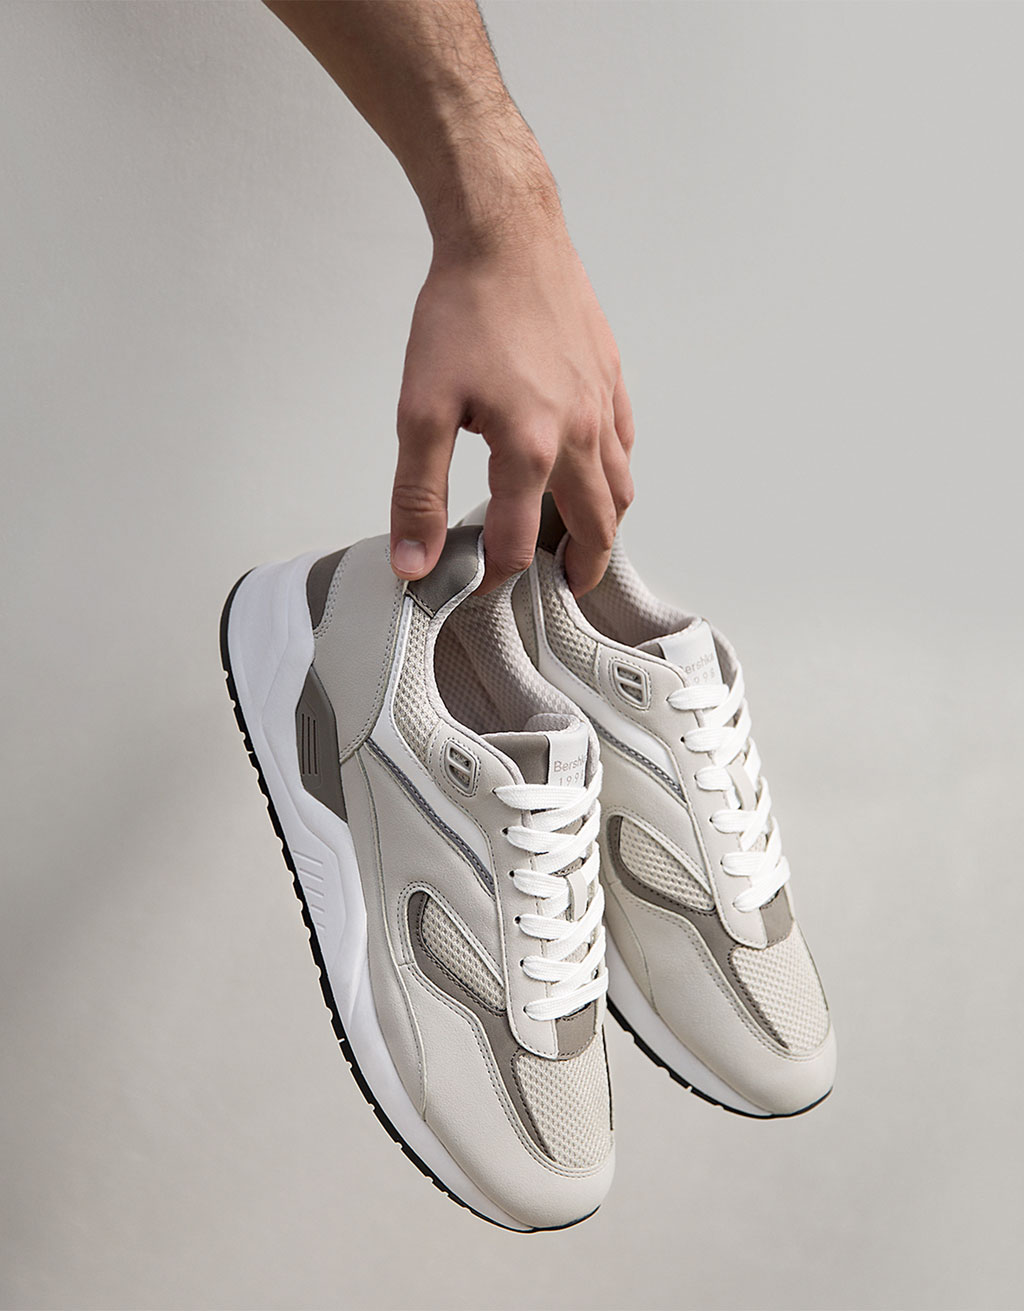 Men's technical sneakers with contrast pieces